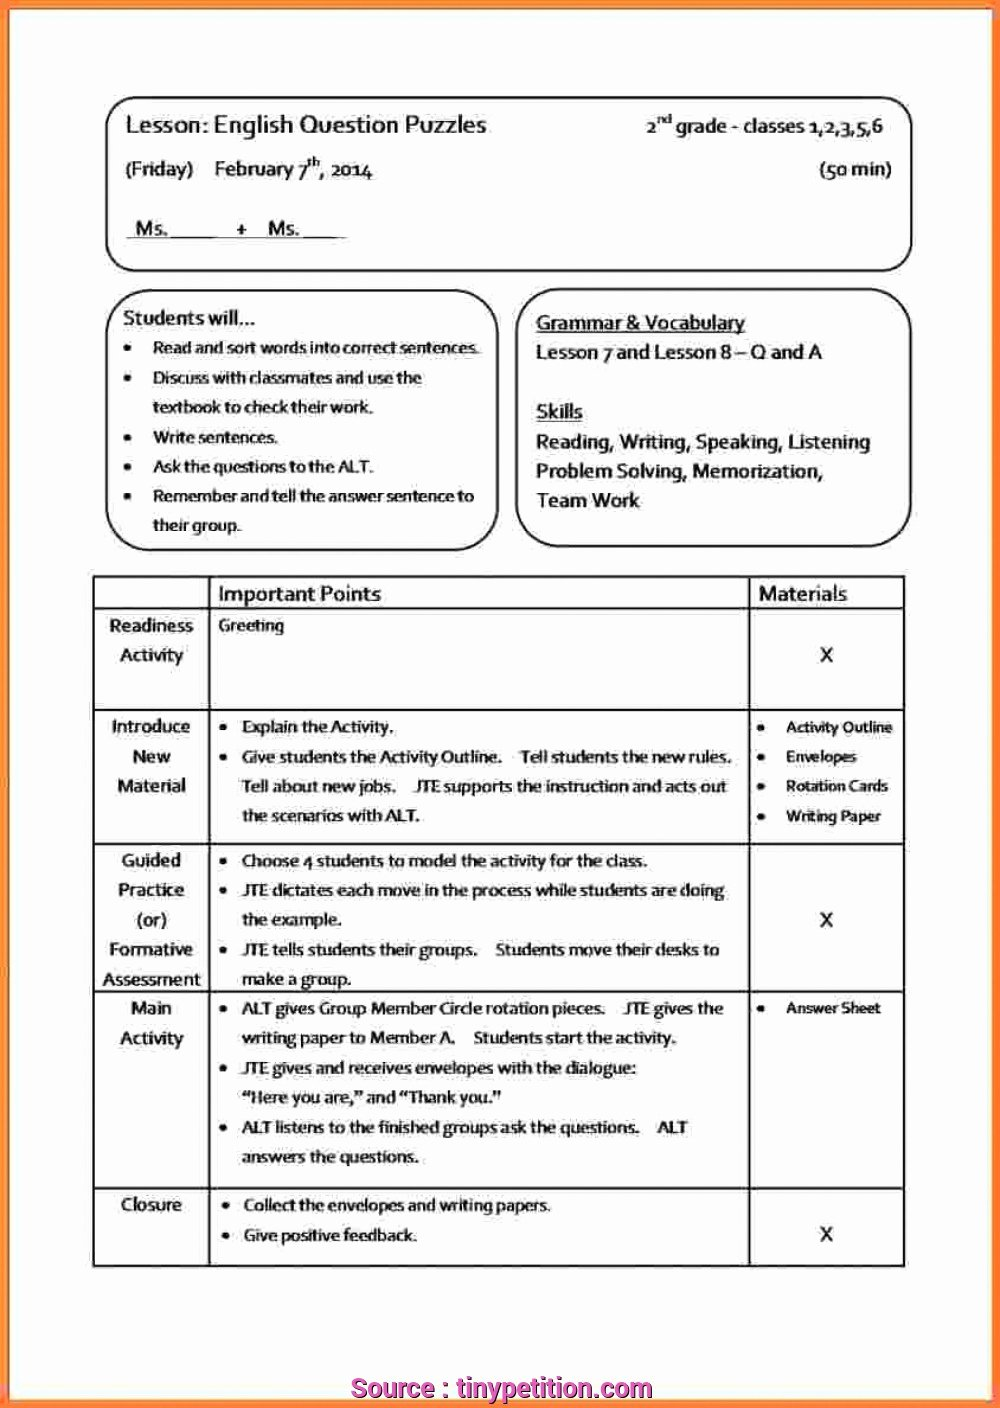 Elementary Music Lesson Plan Template Luxury 7 Popular Music Lesson Plan Elementary S Ehlschlaeger